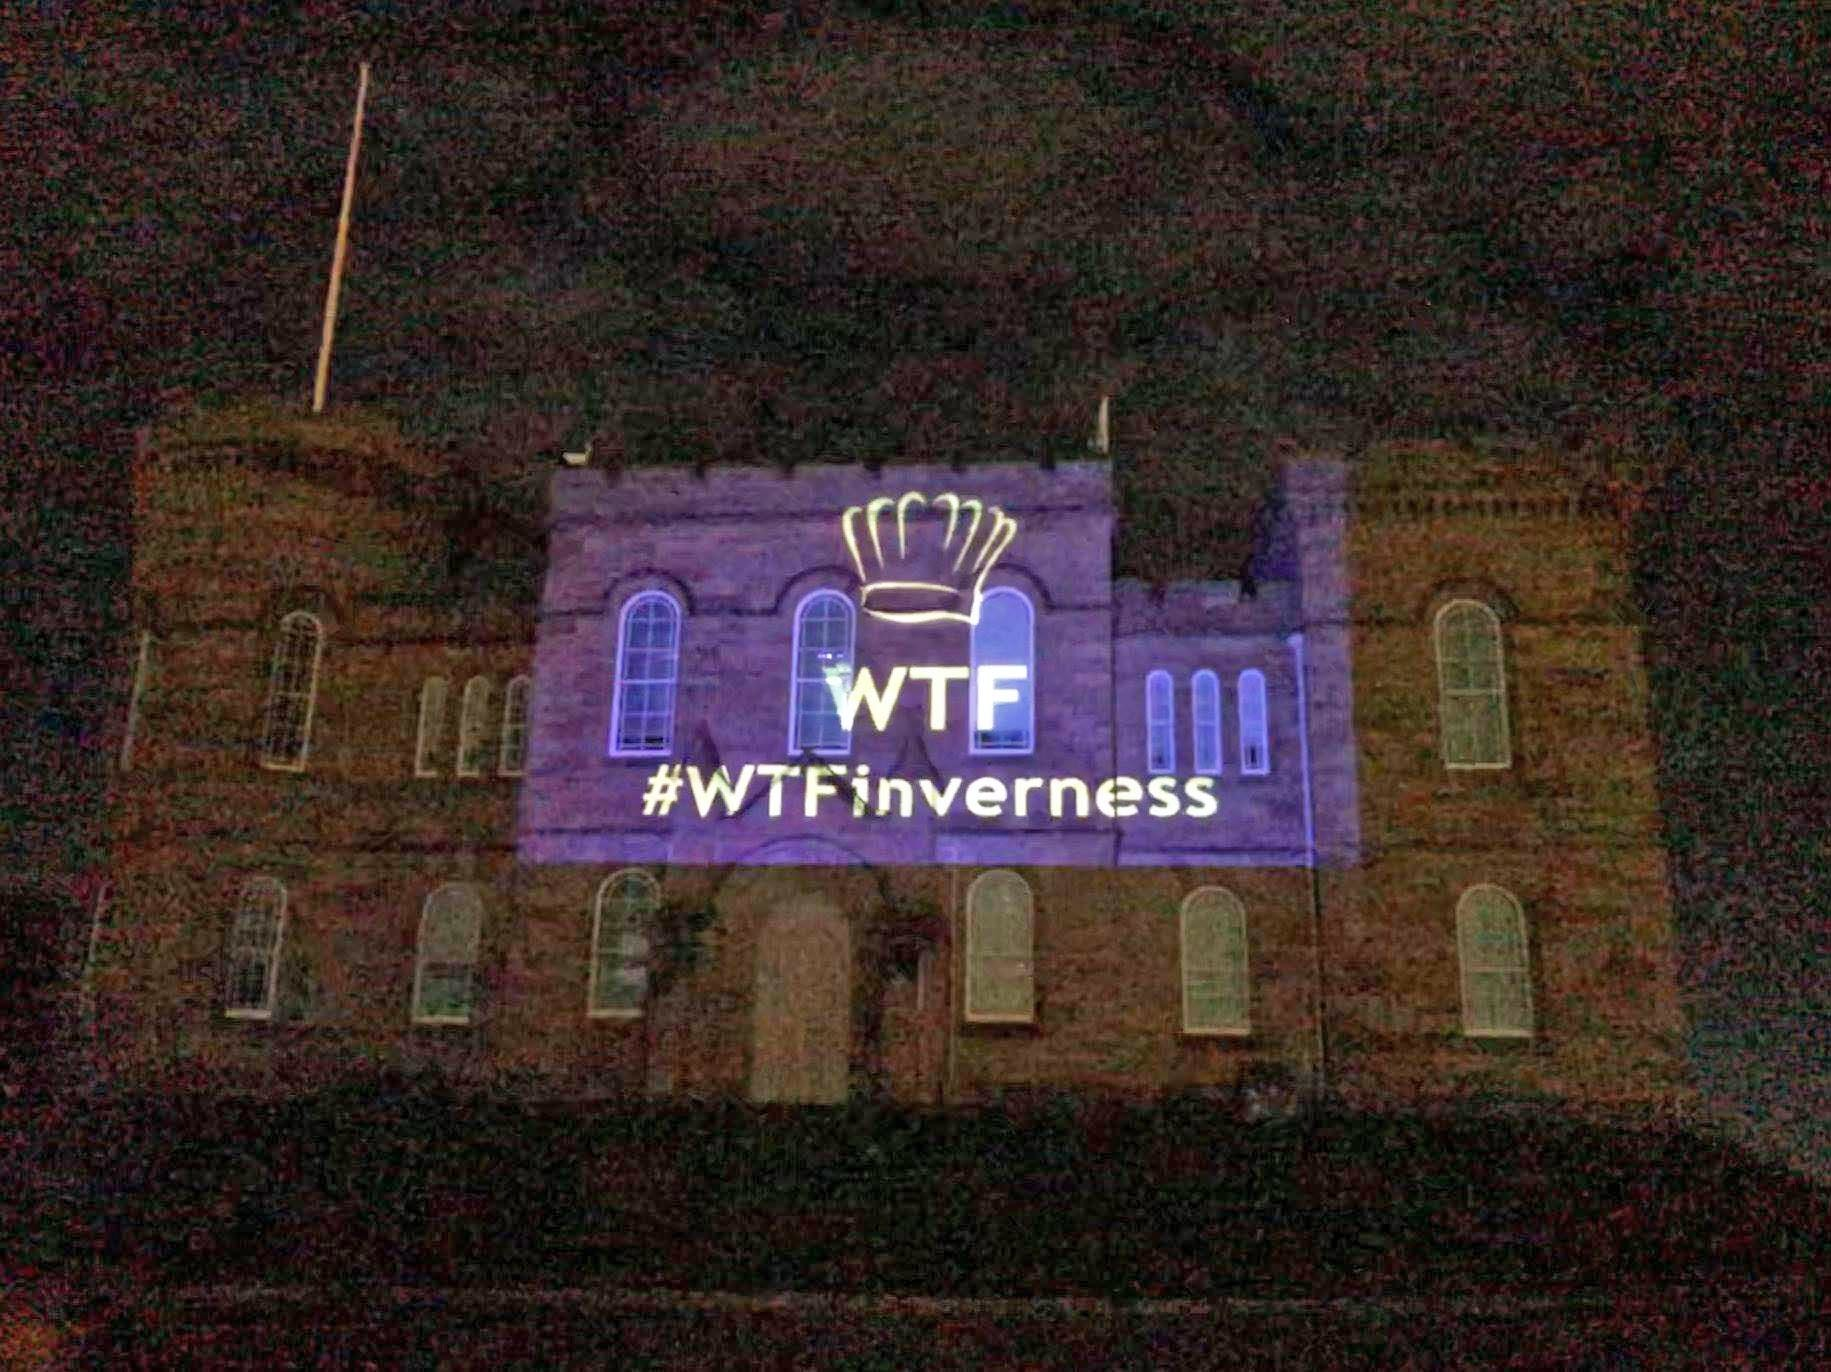 WTF signage had been appearing all over Inverness over the last week.